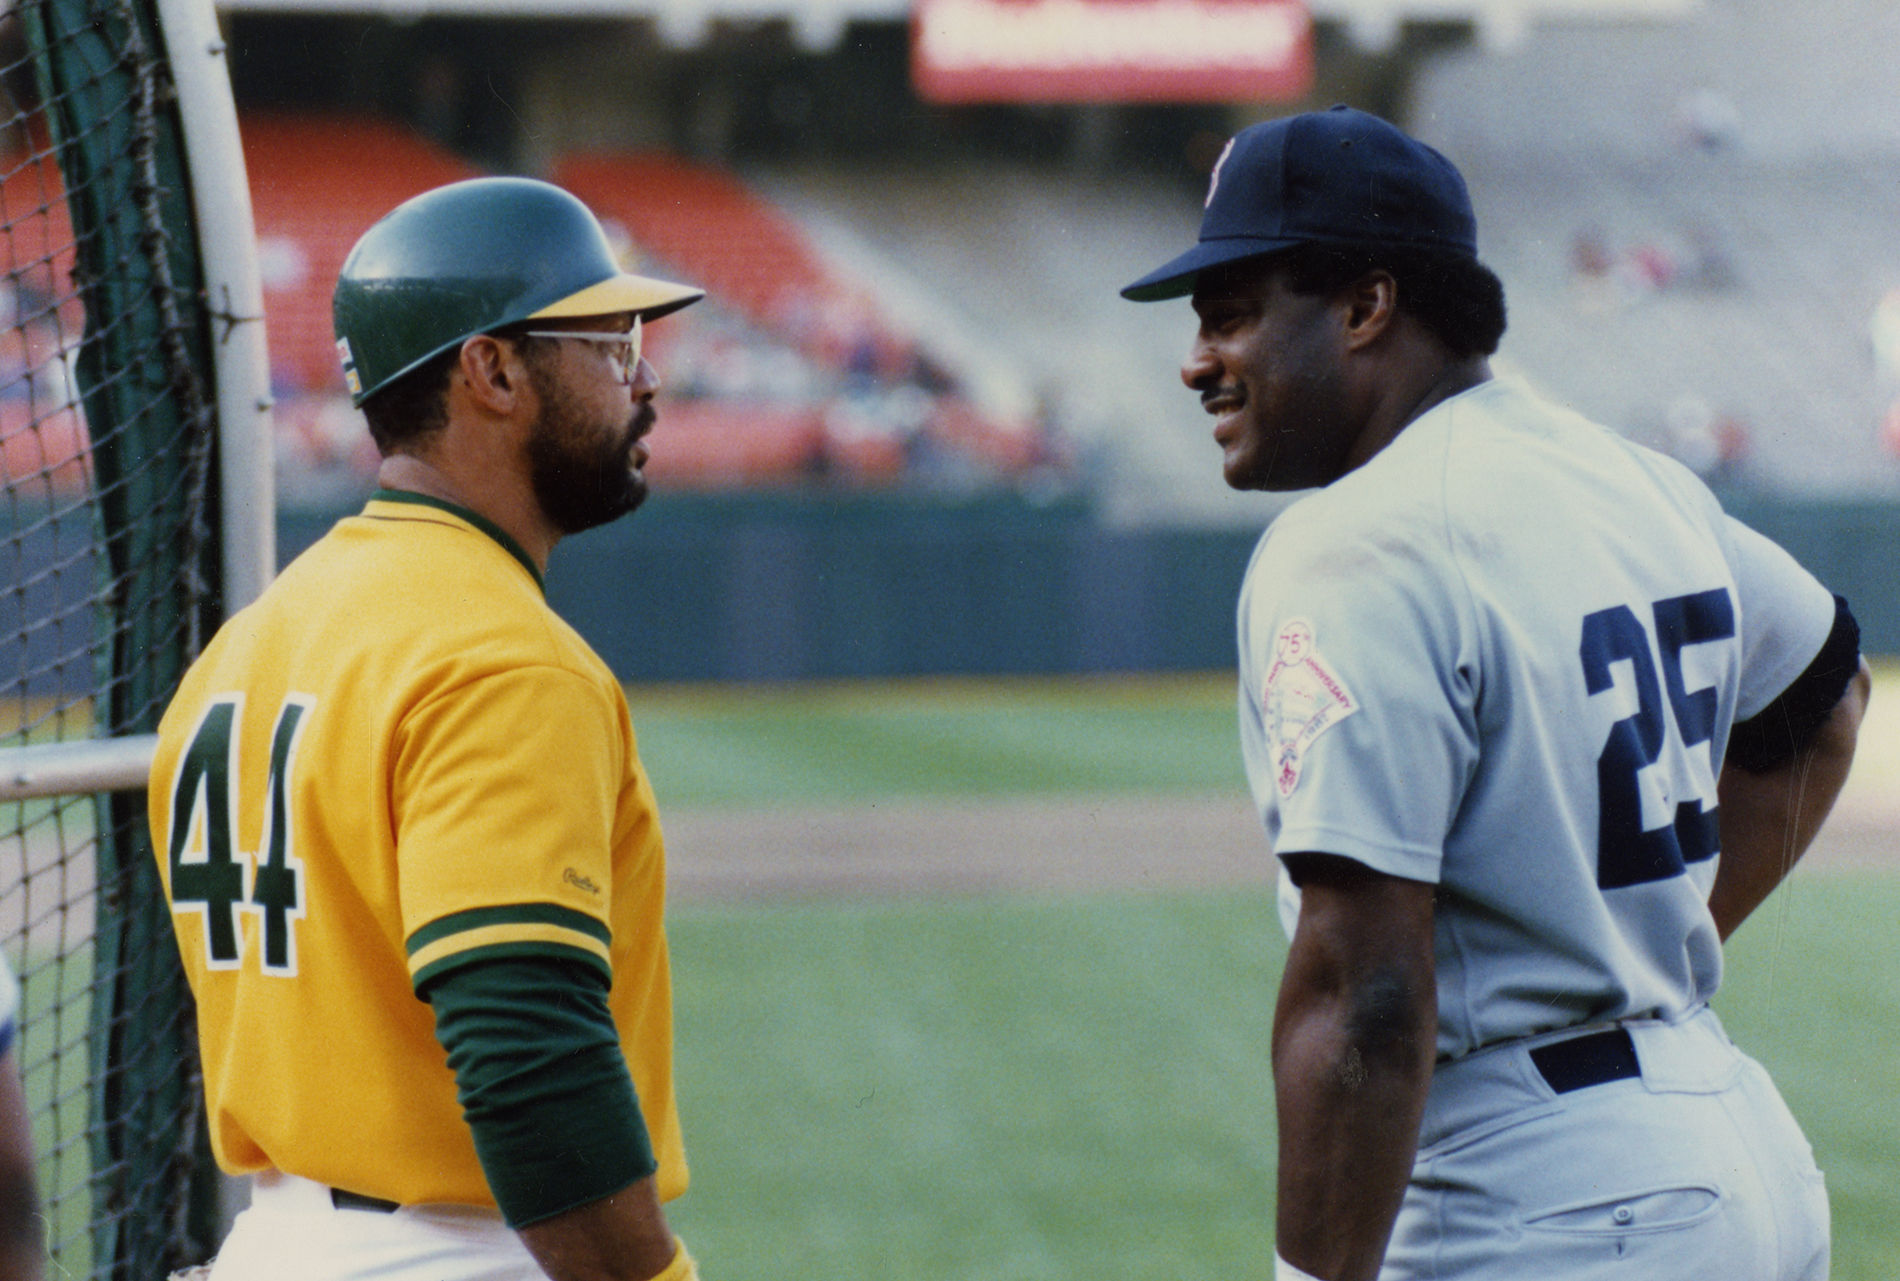 e6eba884b9b3 Reggie Jackson, shown here chatting with Don Baylor, returned to the Oakland  A's for his 21st-and-final big league season in 1987. Jackson played his  first ...